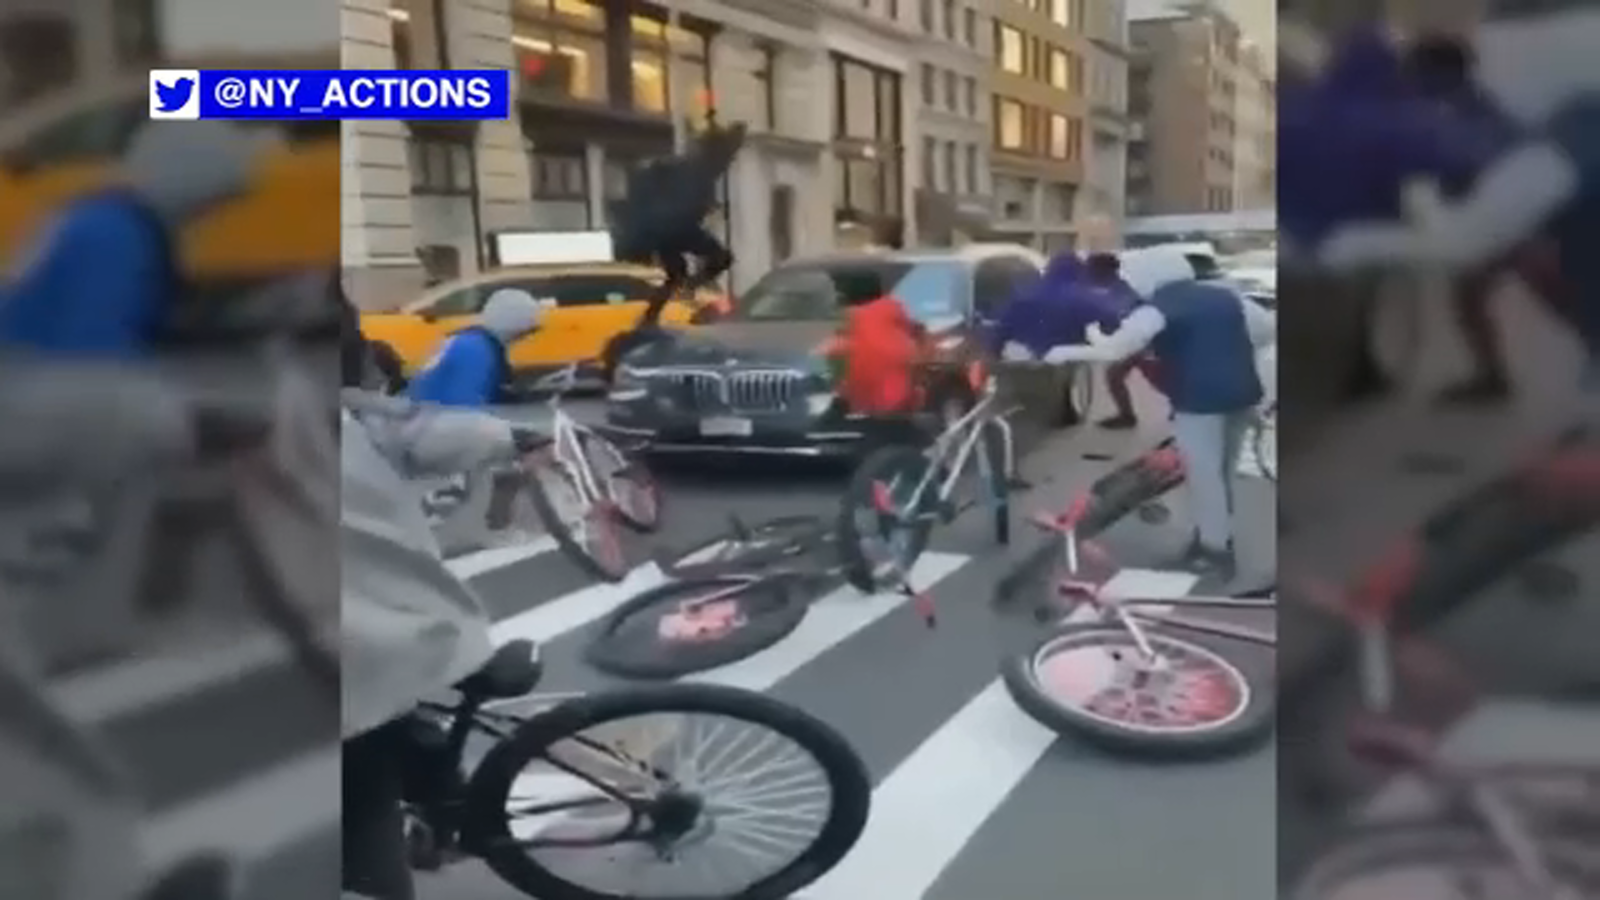 Drop charges against teenager in a biker attack in the city center;  The police make a new arrest